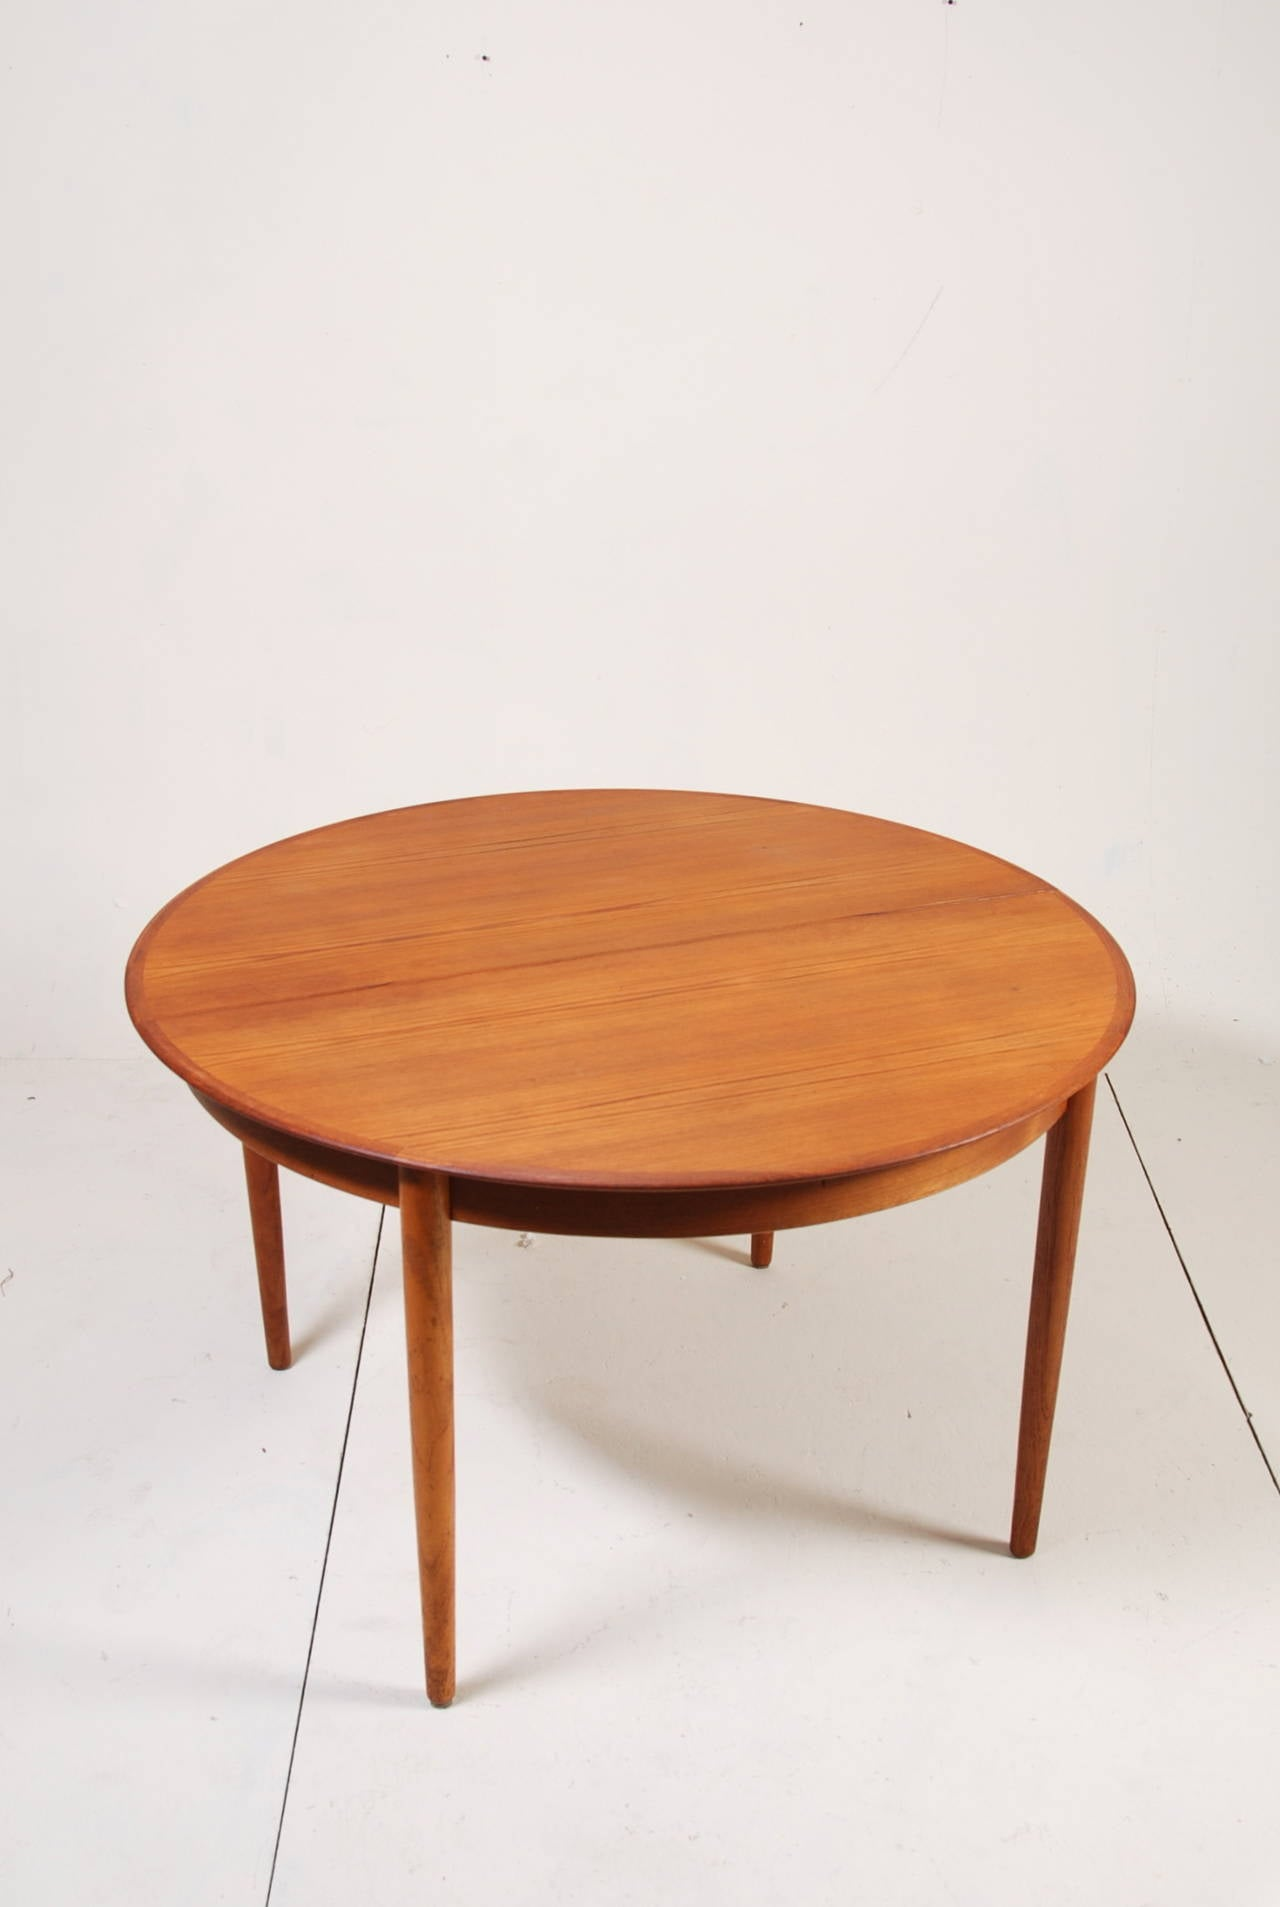 round danish modern teak dining table by dyrlund at 1stdibs. Black Bedroom Furniture Sets. Home Design Ideas